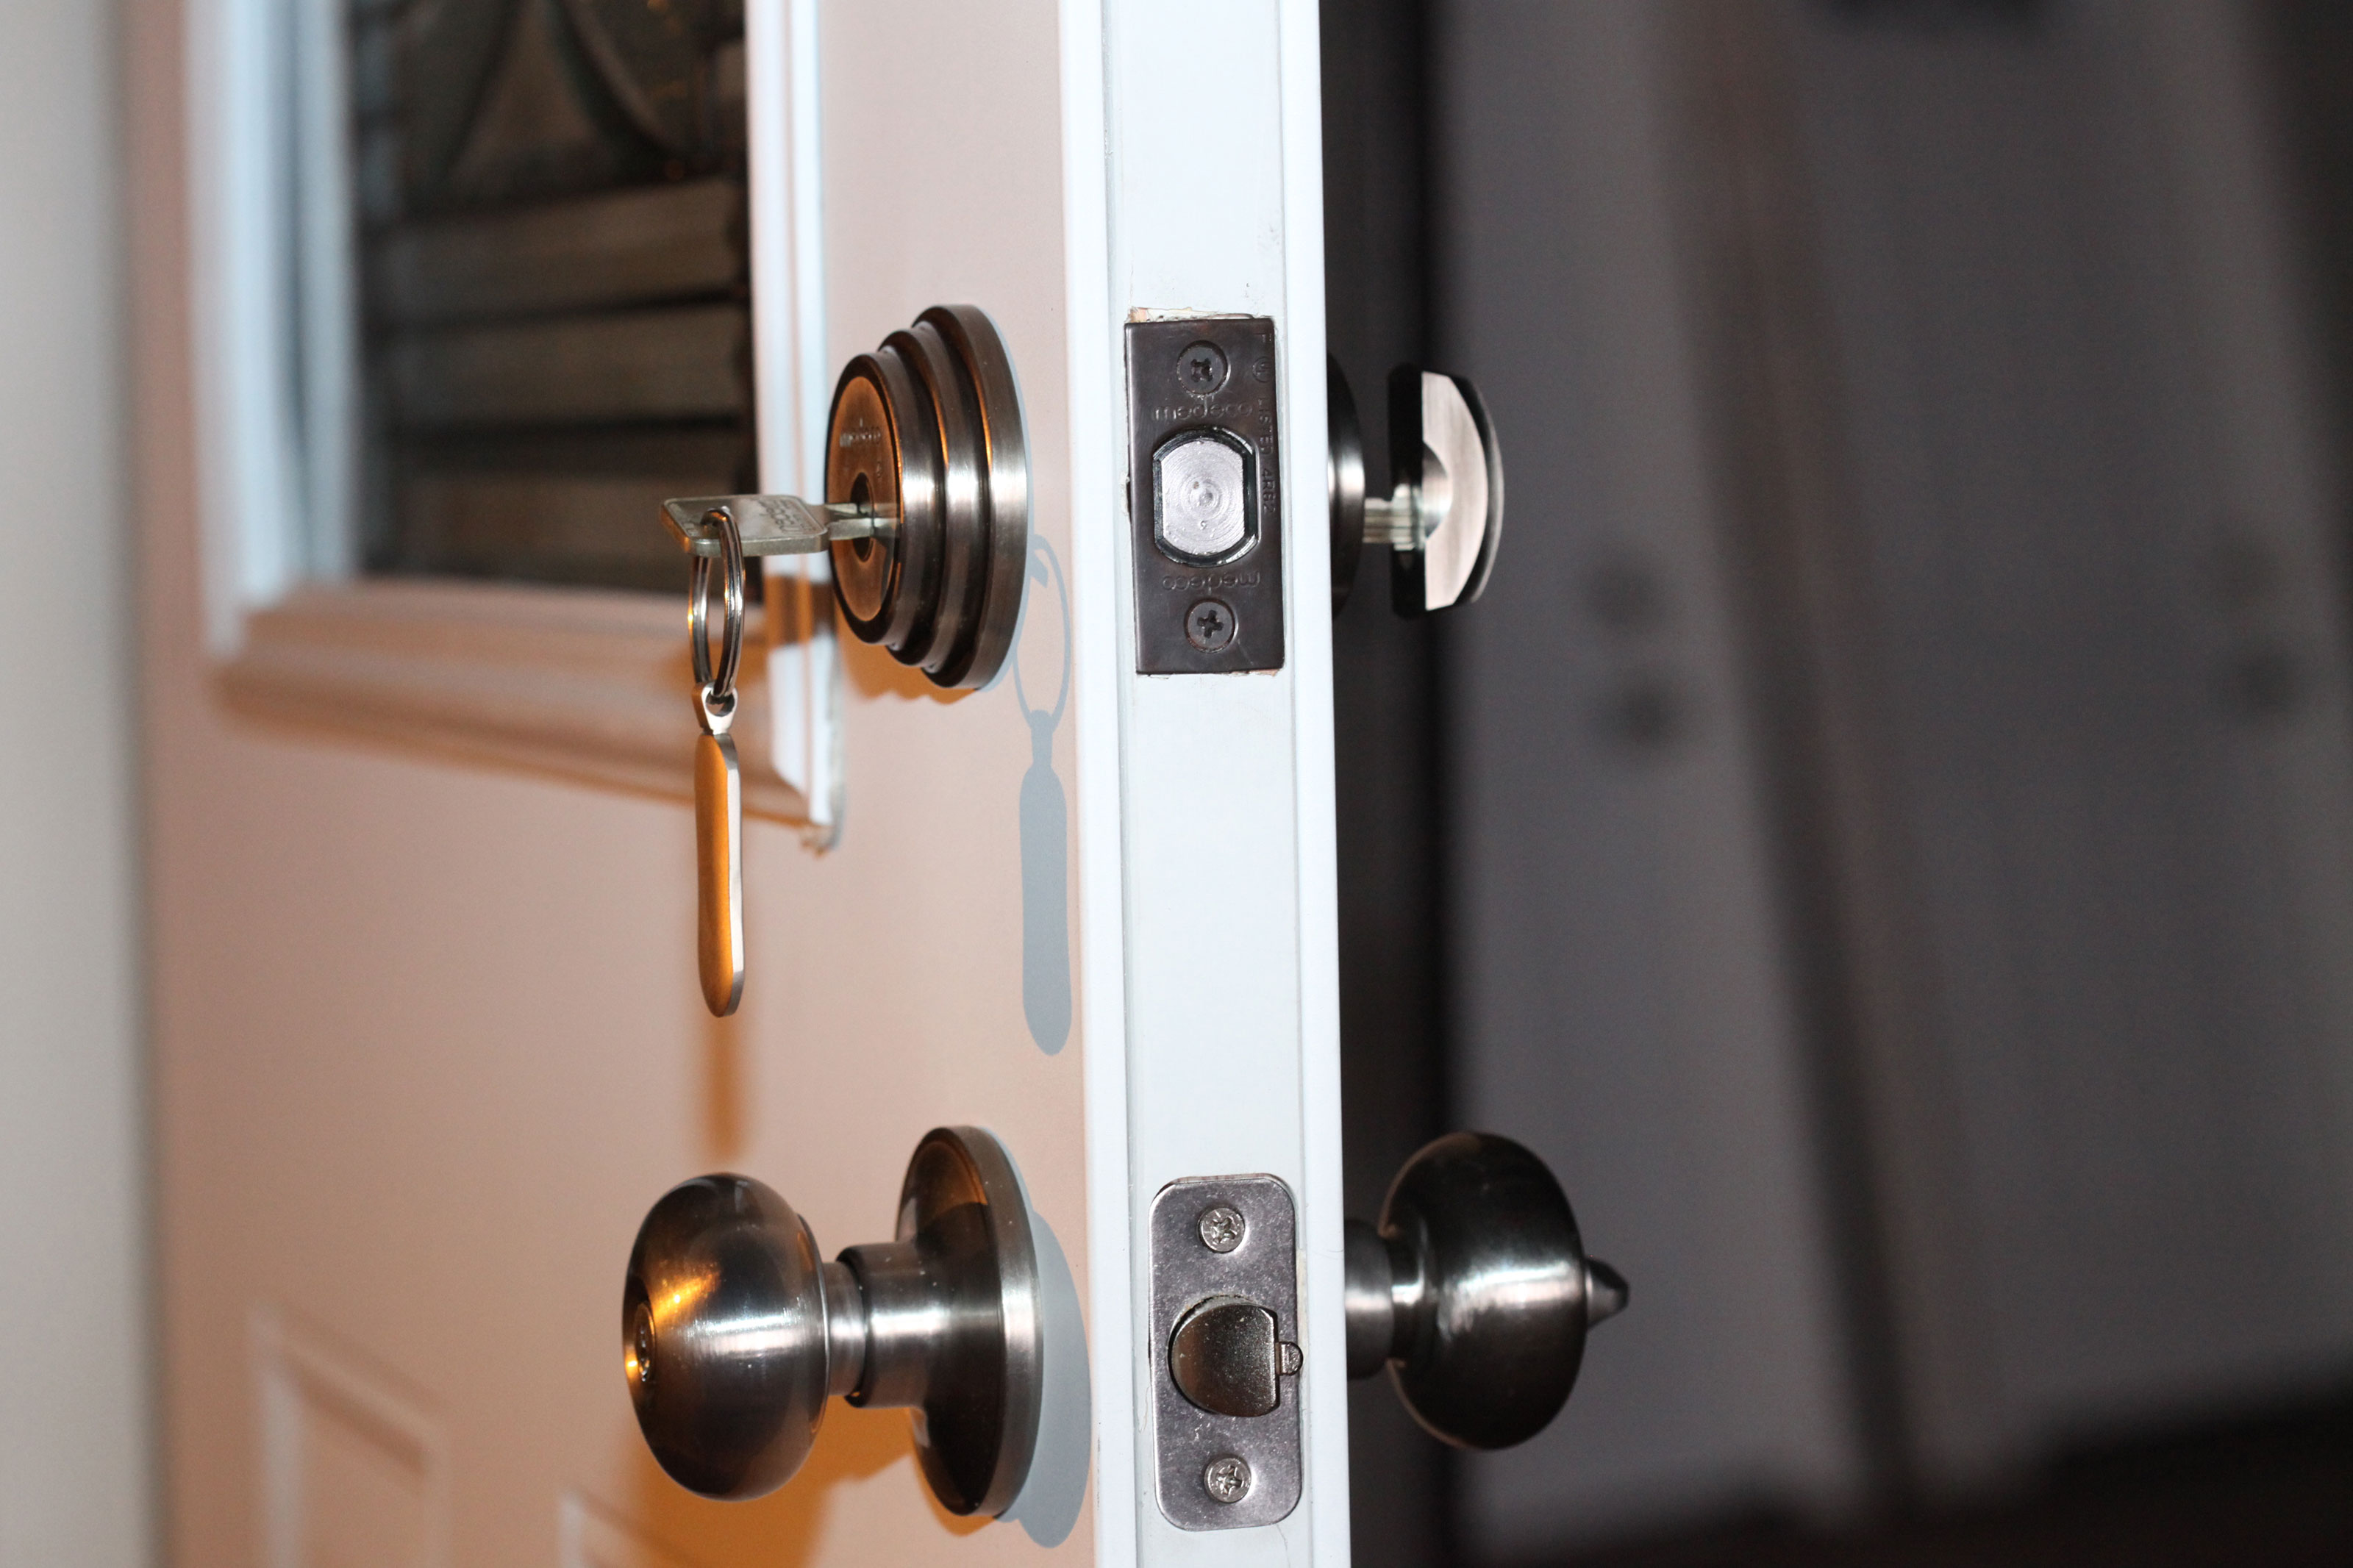 This door lock is top-rated for safety